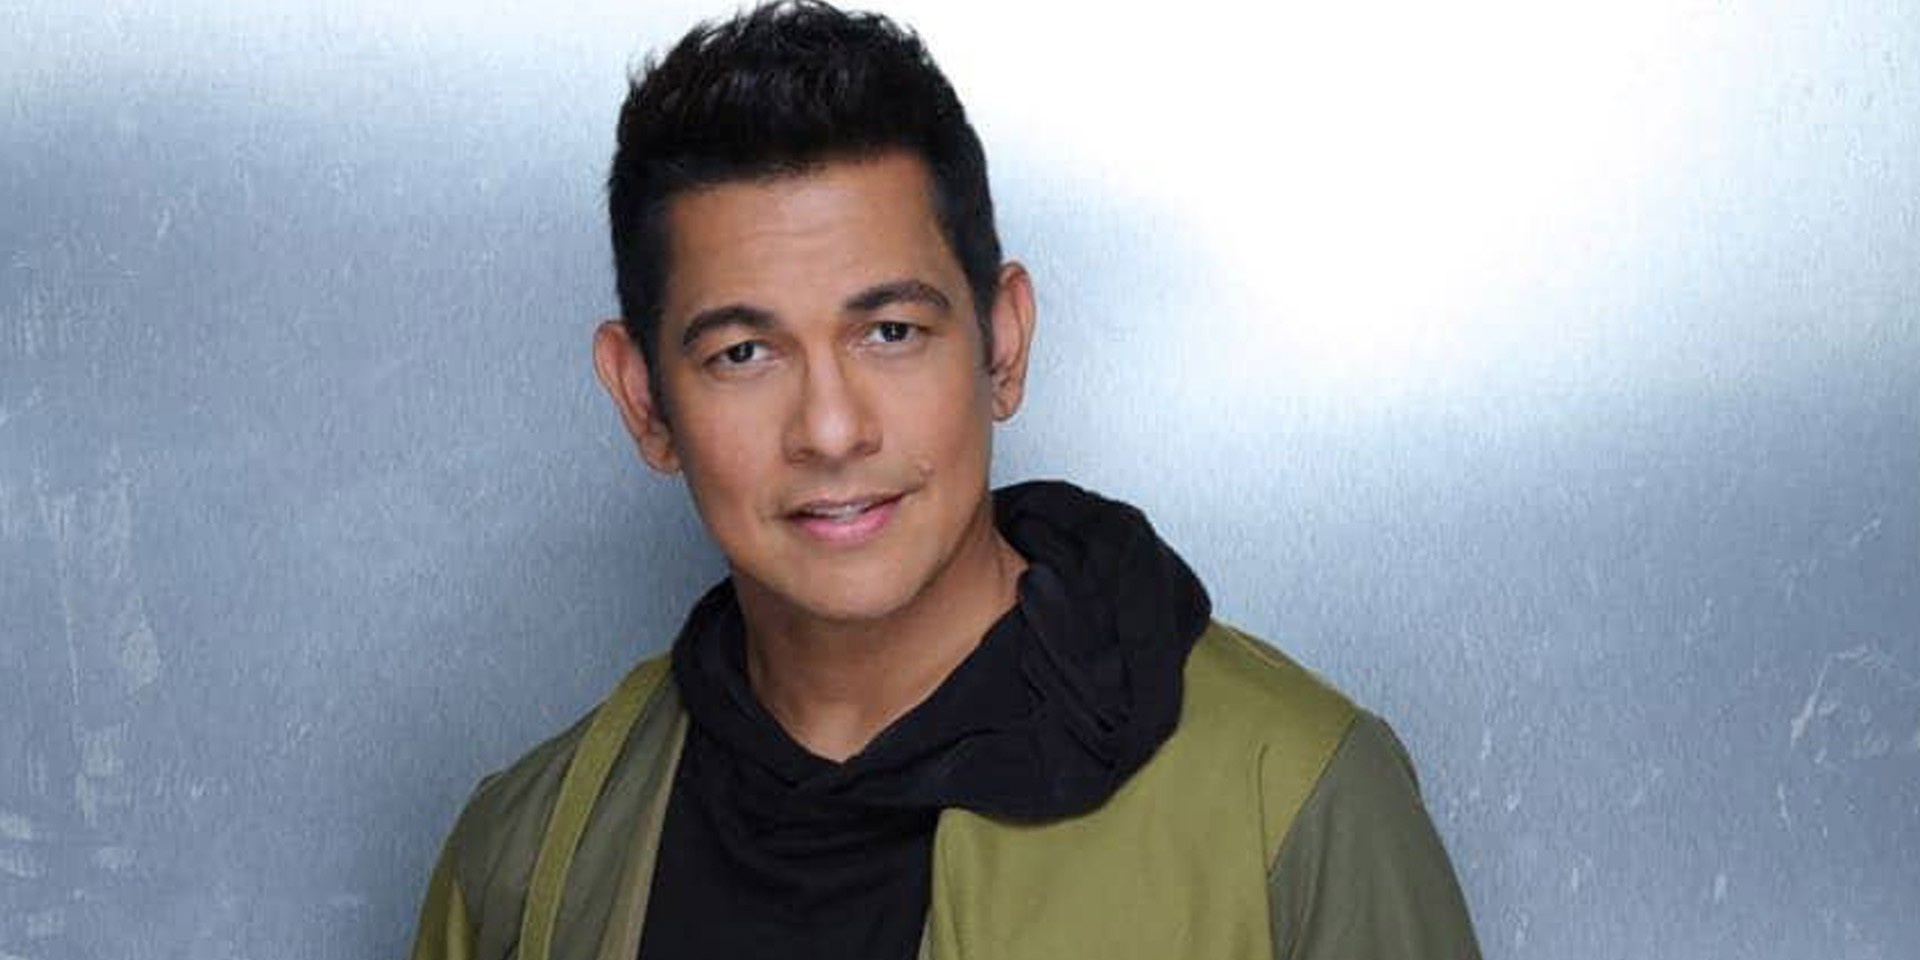 Gary Valenciano to return to the stage with Mr. Pure Energy in XS concert